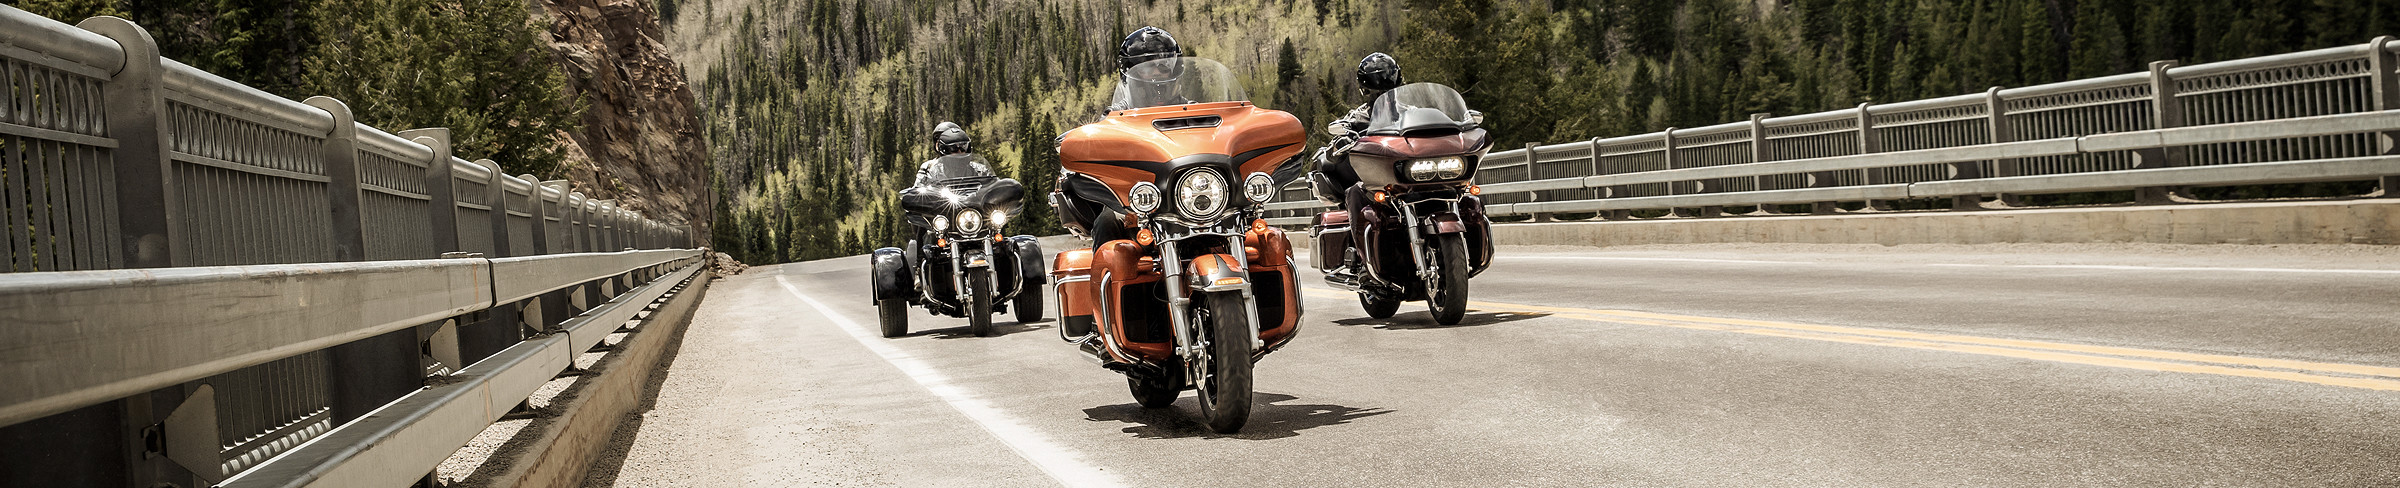 Used Harley-Davidson Touring Street Glide Motorcycles for sale near Cleveland, Ohio